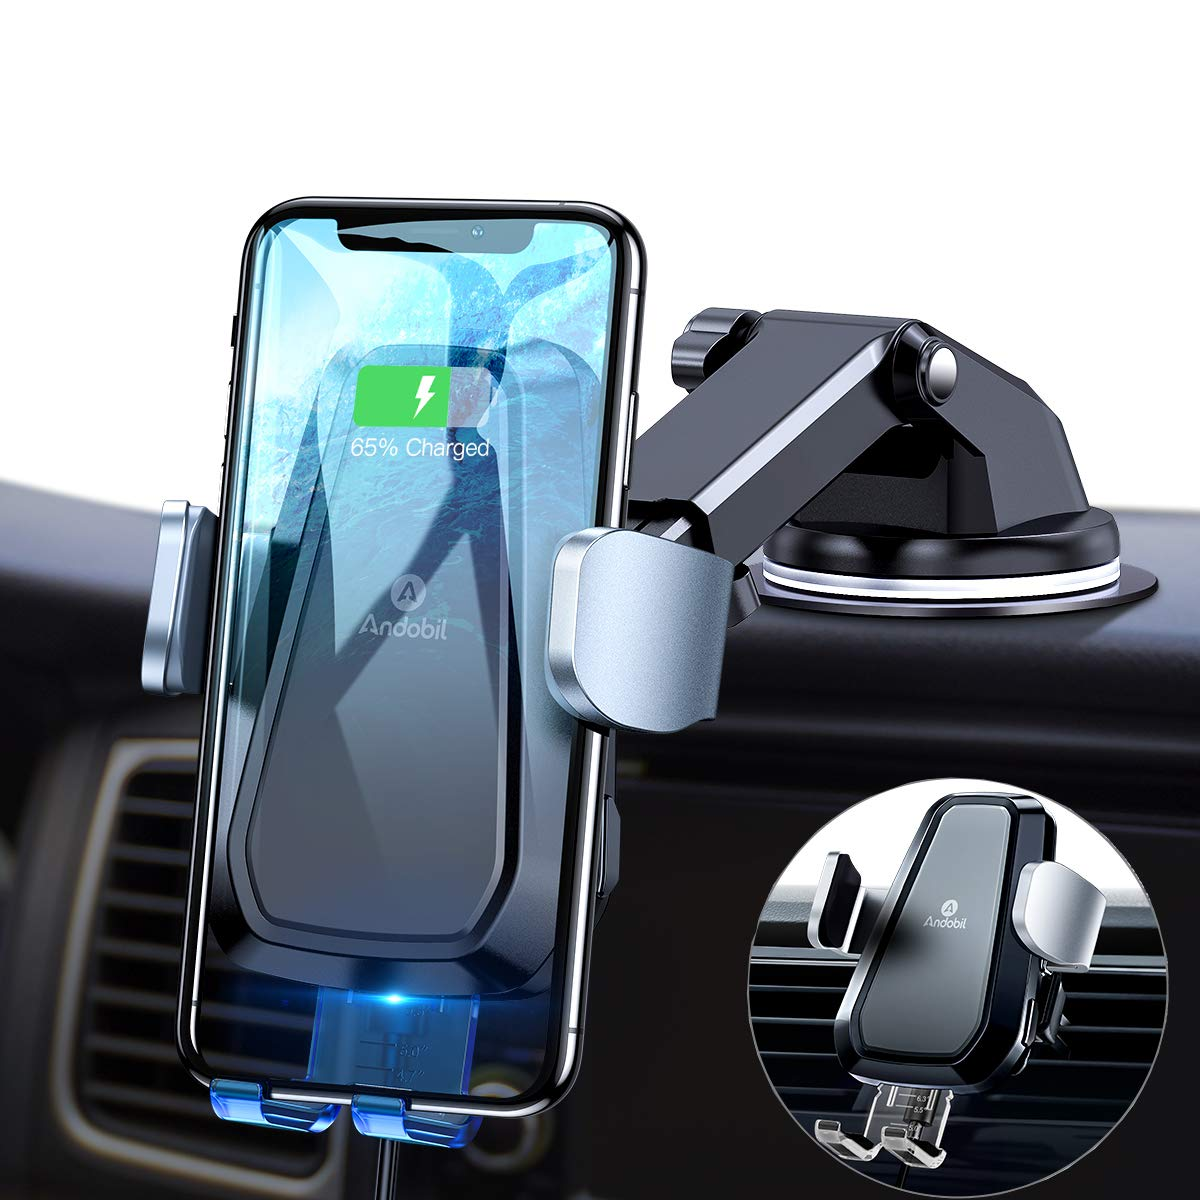 andobil One Touch Wireless Car Charger Mount, Auto-Clamping Qi Cellphone Holder for Car Cradle Compatible iPhone X/Xs/Xs Max/XR /8/8 Plus, Samsung Galaxy S10e/S10/S10 Plus/S9+/S9/S8+/S8/Note 9/Note 8